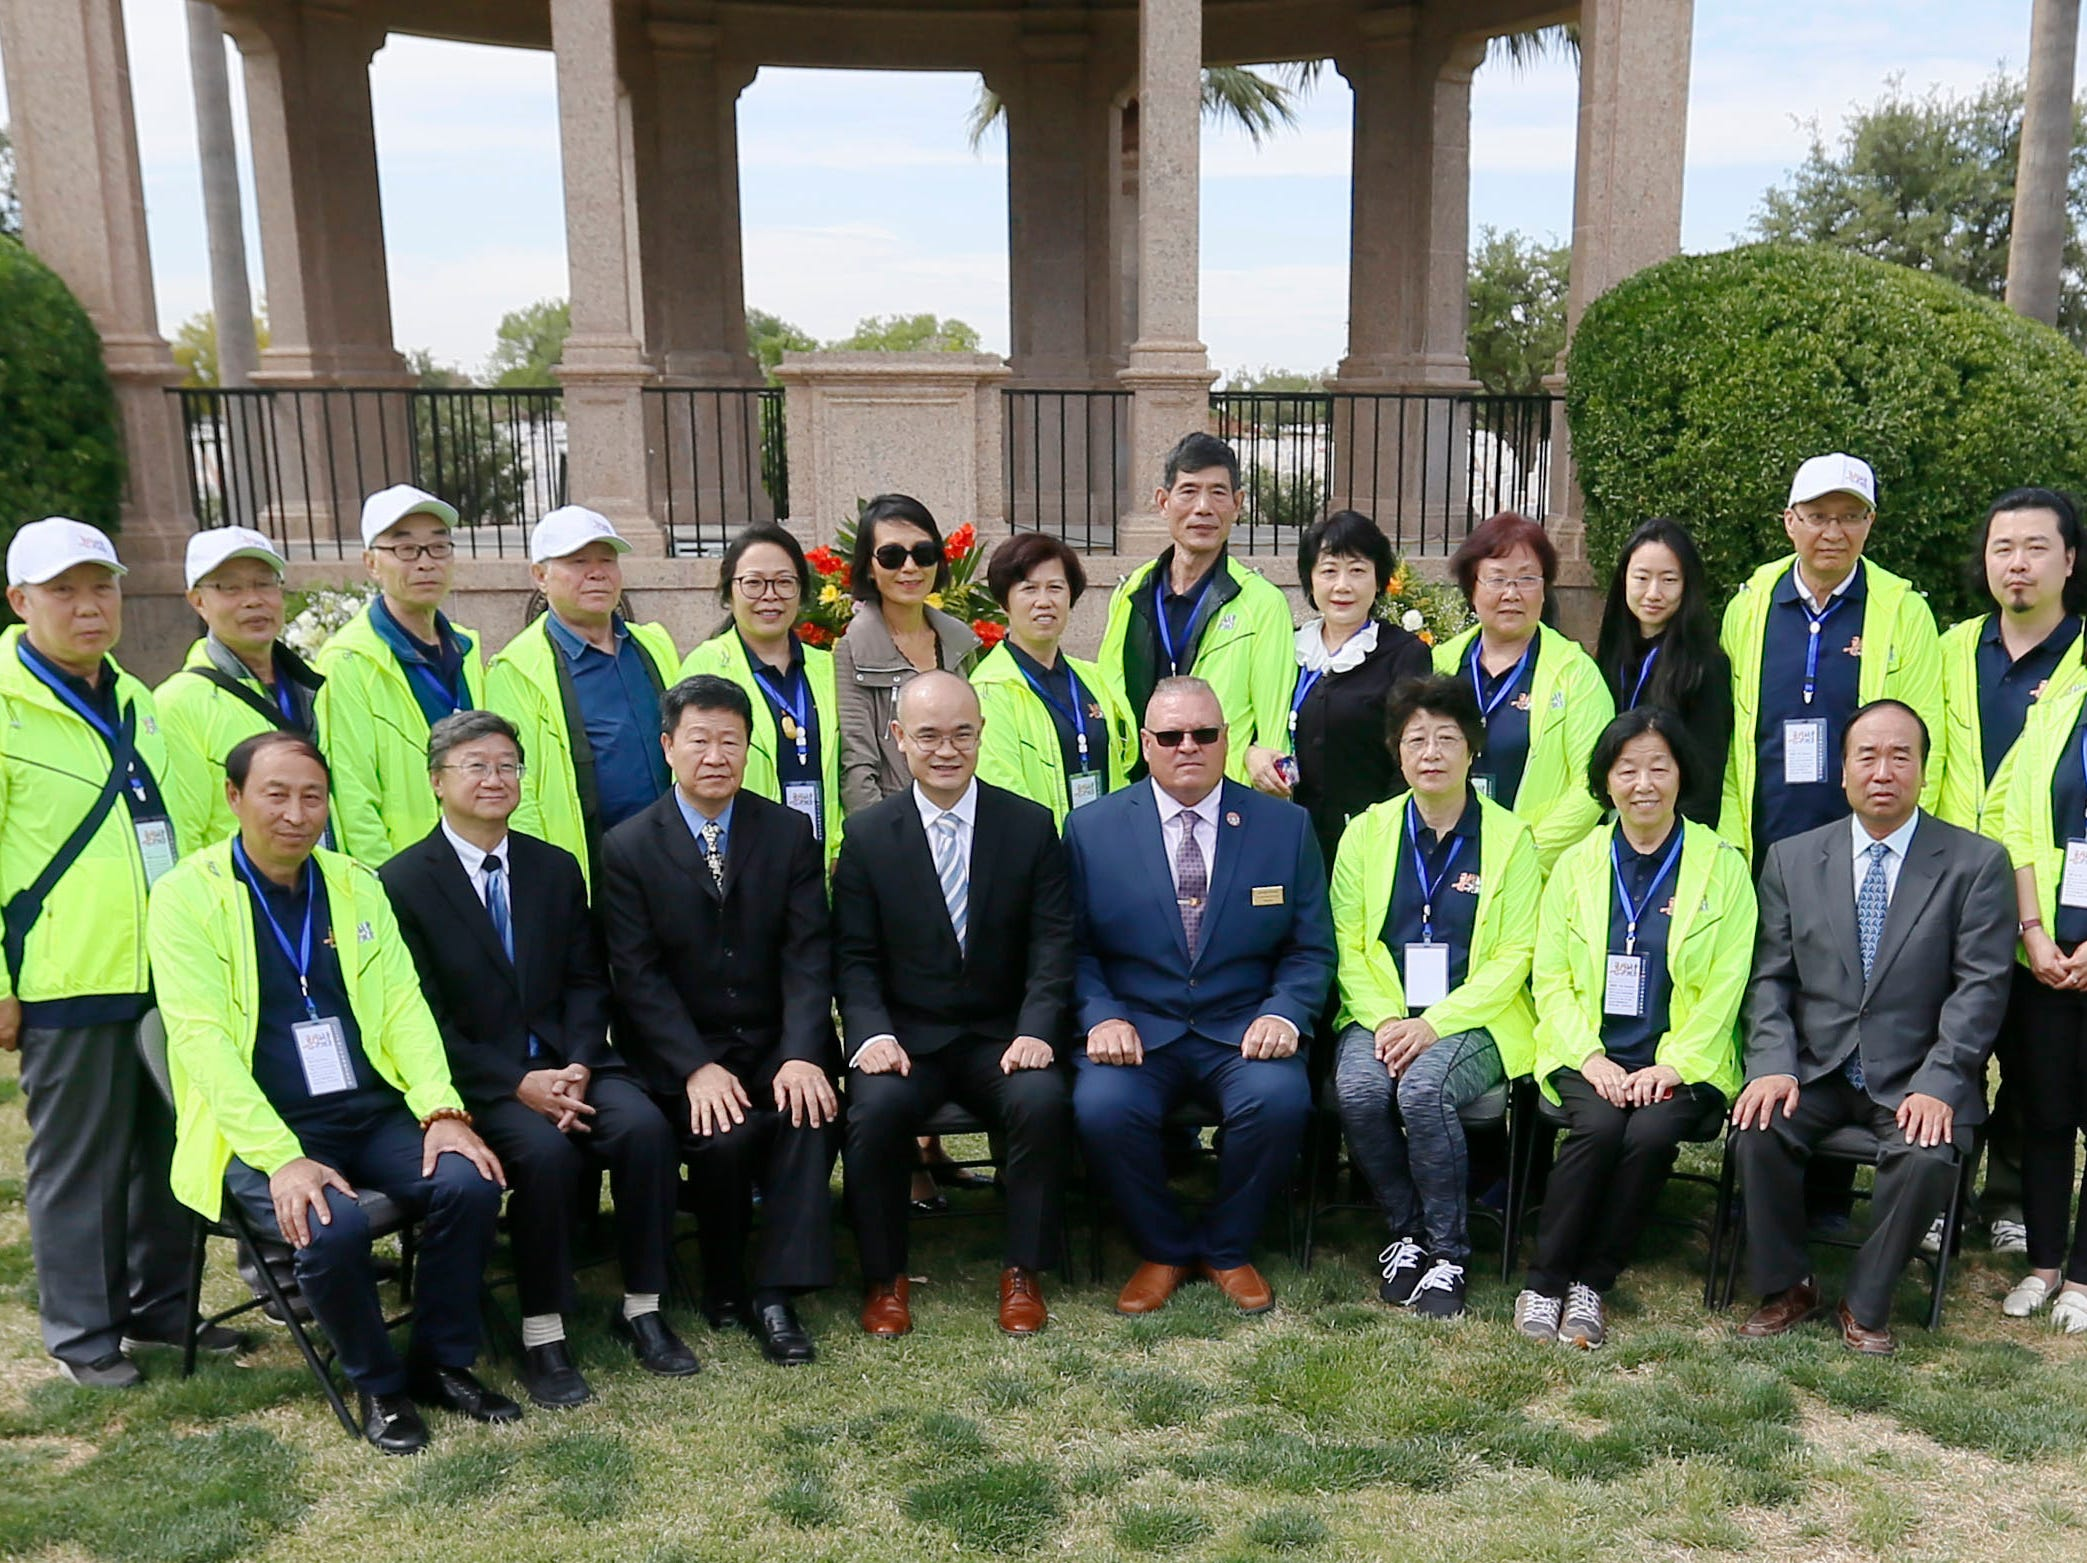 The Hunan LongYue Peace Charity Development Center brought family members to El Paso to pay a special remembrance to their relatives who are amongst the 52 Chinese pilots who died in the U.S. during flight training in World War II.